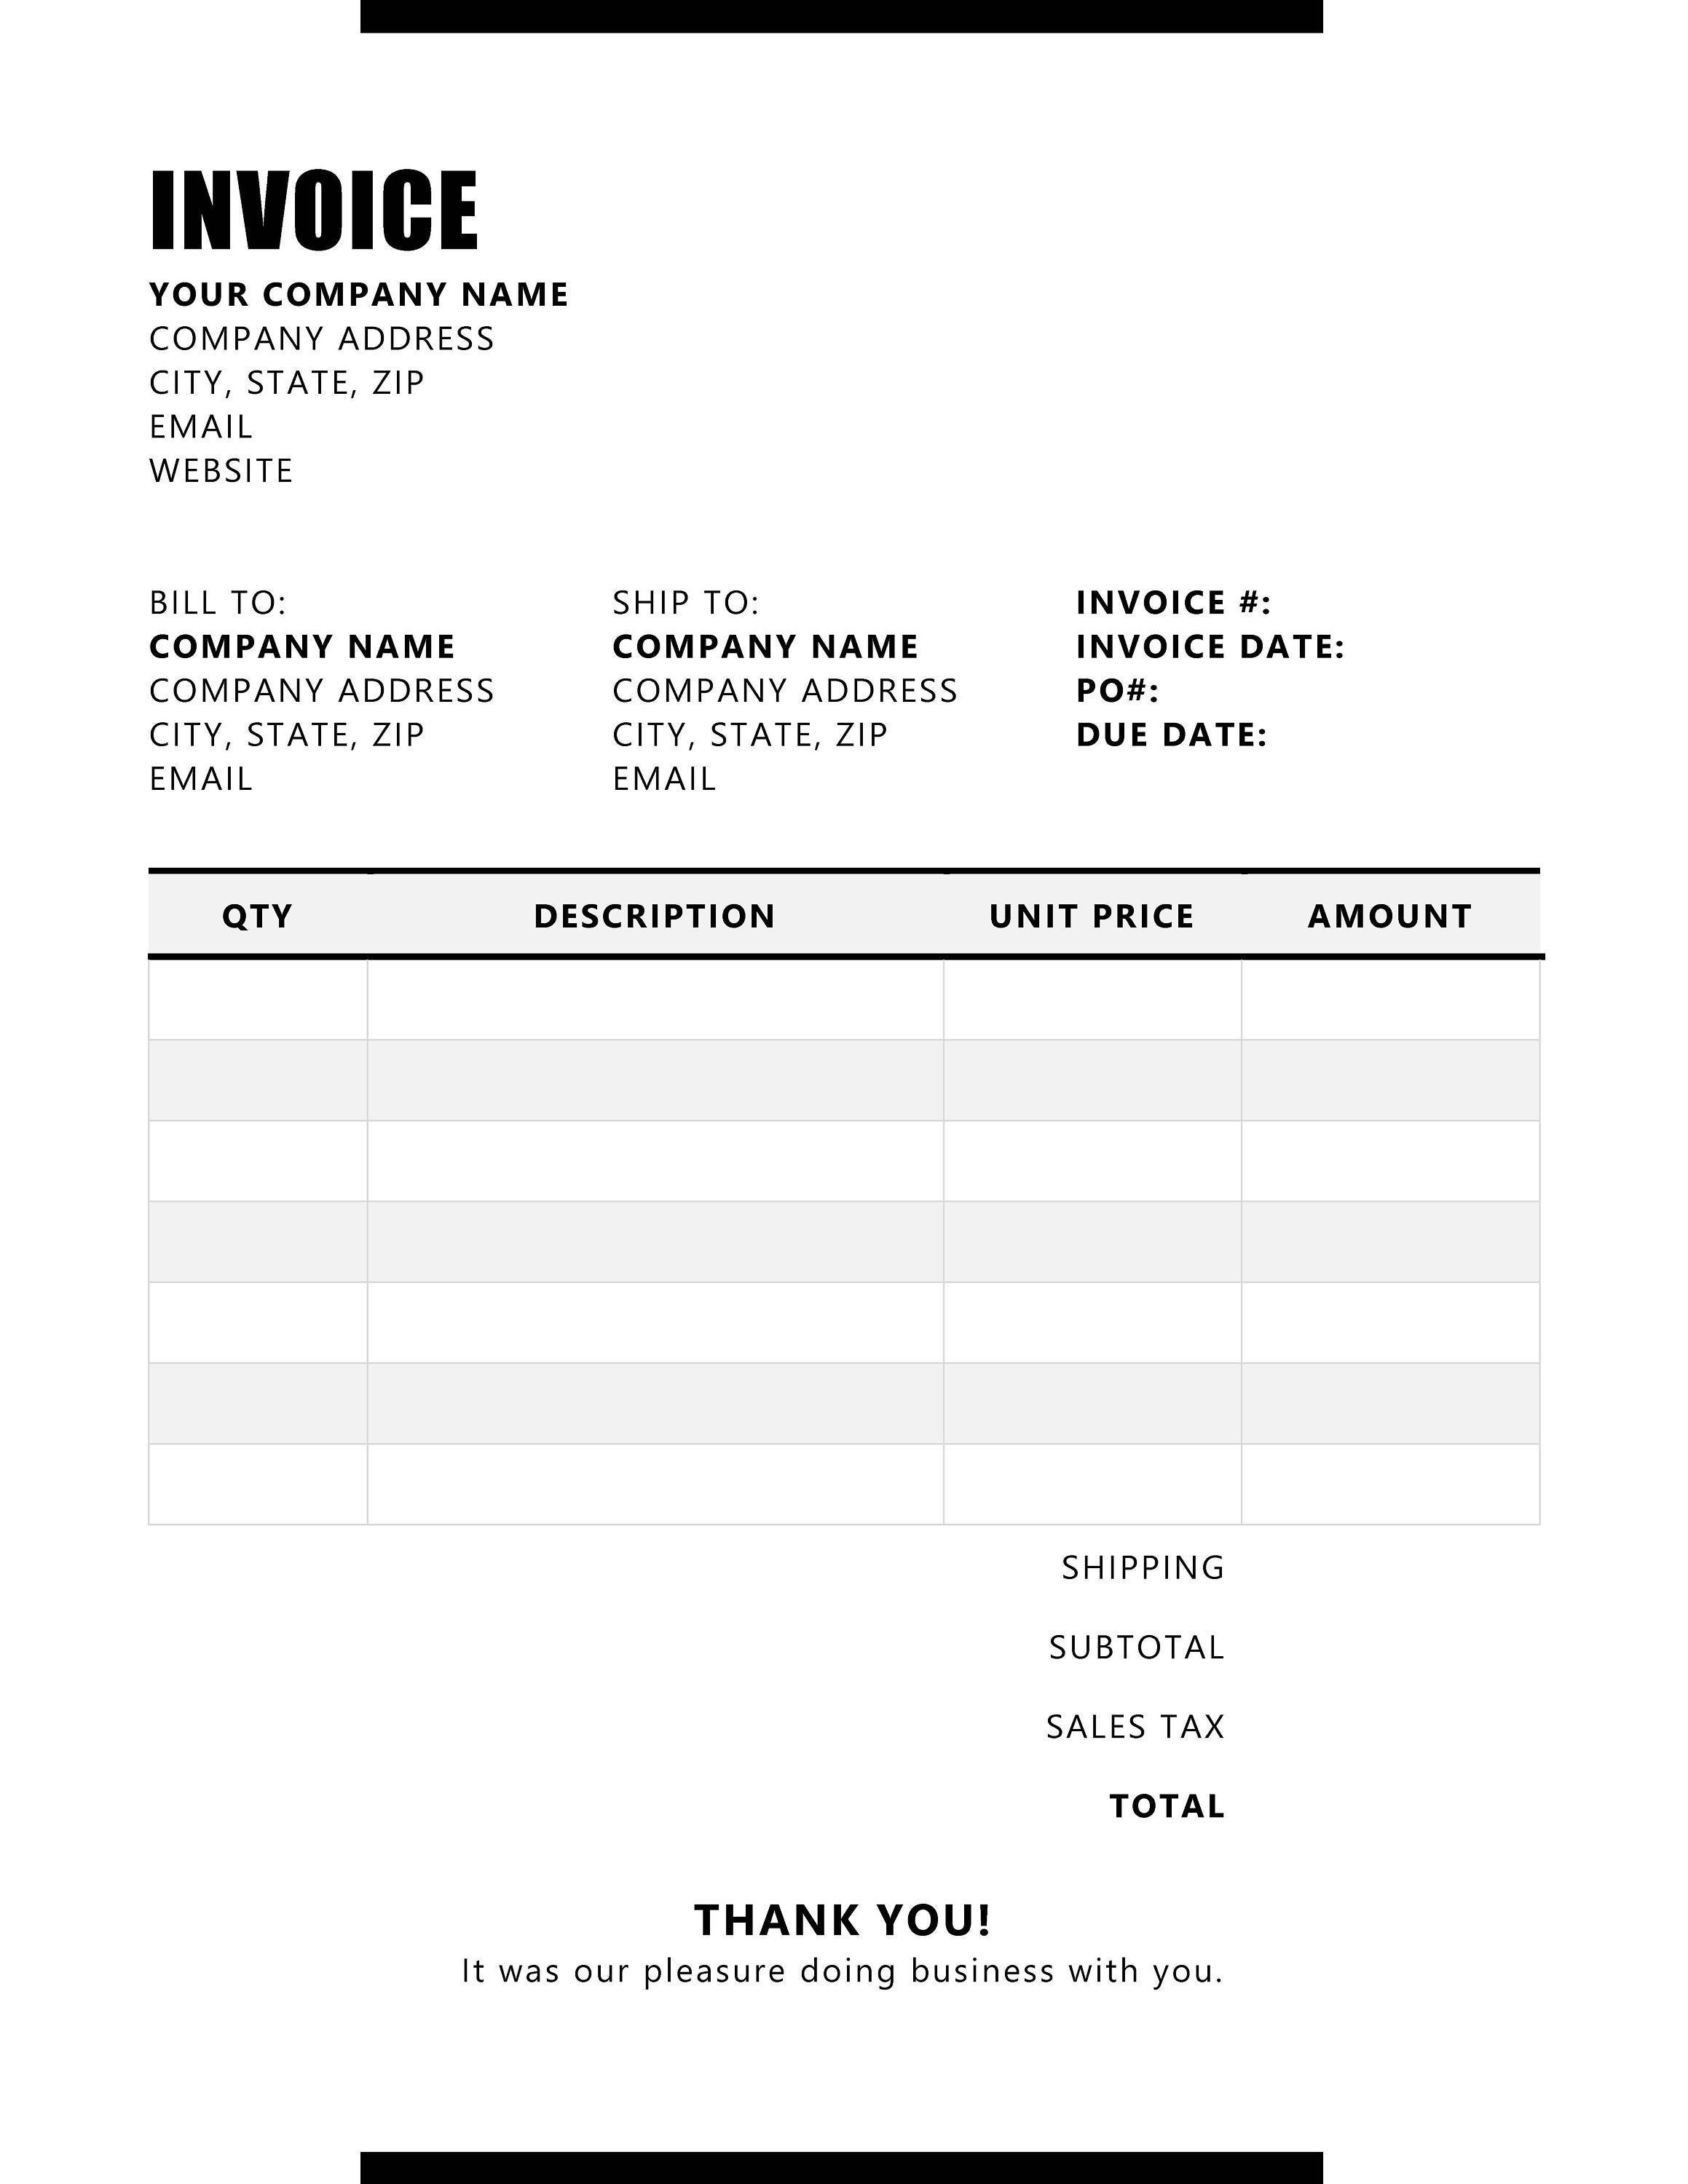 Invoice Template Printable Invoice Business Form Editable Etsy In 2021 Printable Invoice Invoice Template Template Printable